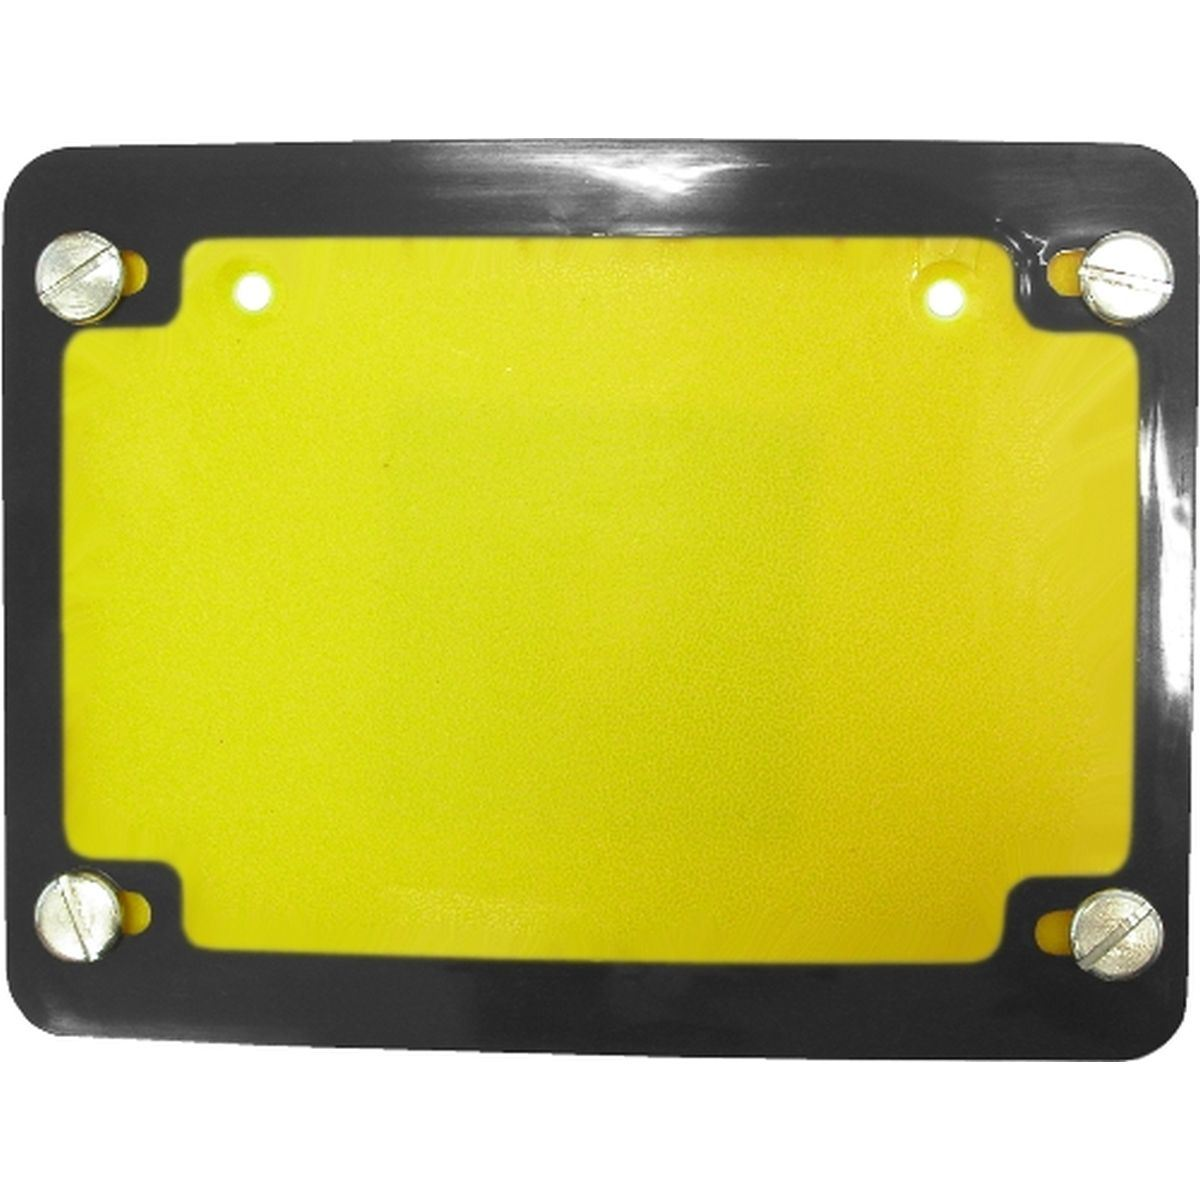 Aw Motorcycle Parts Number Plate Surround 6 Digit Chrome